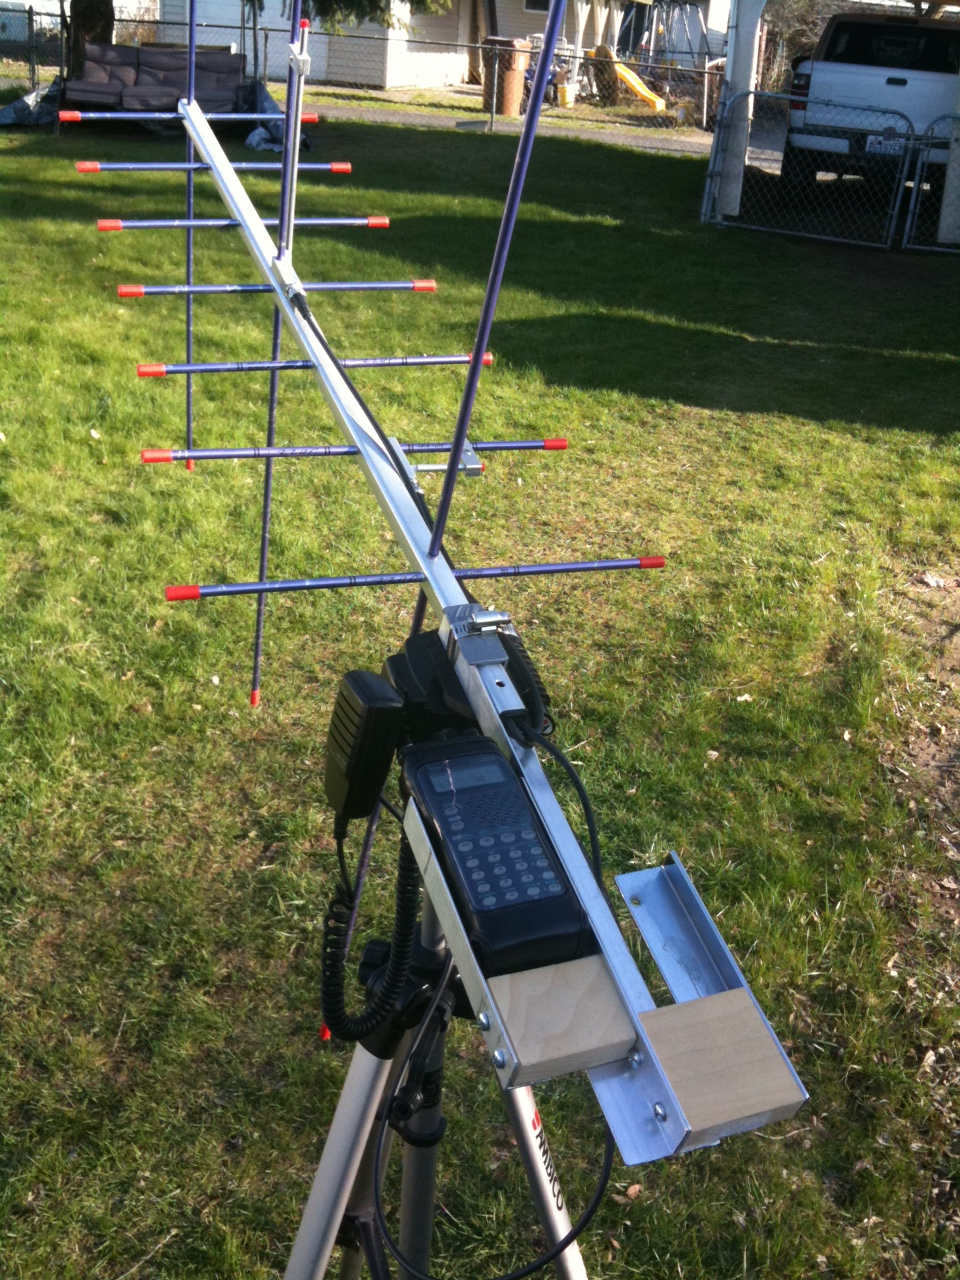 Are not amateur radio satellite tracking antenna remarkable